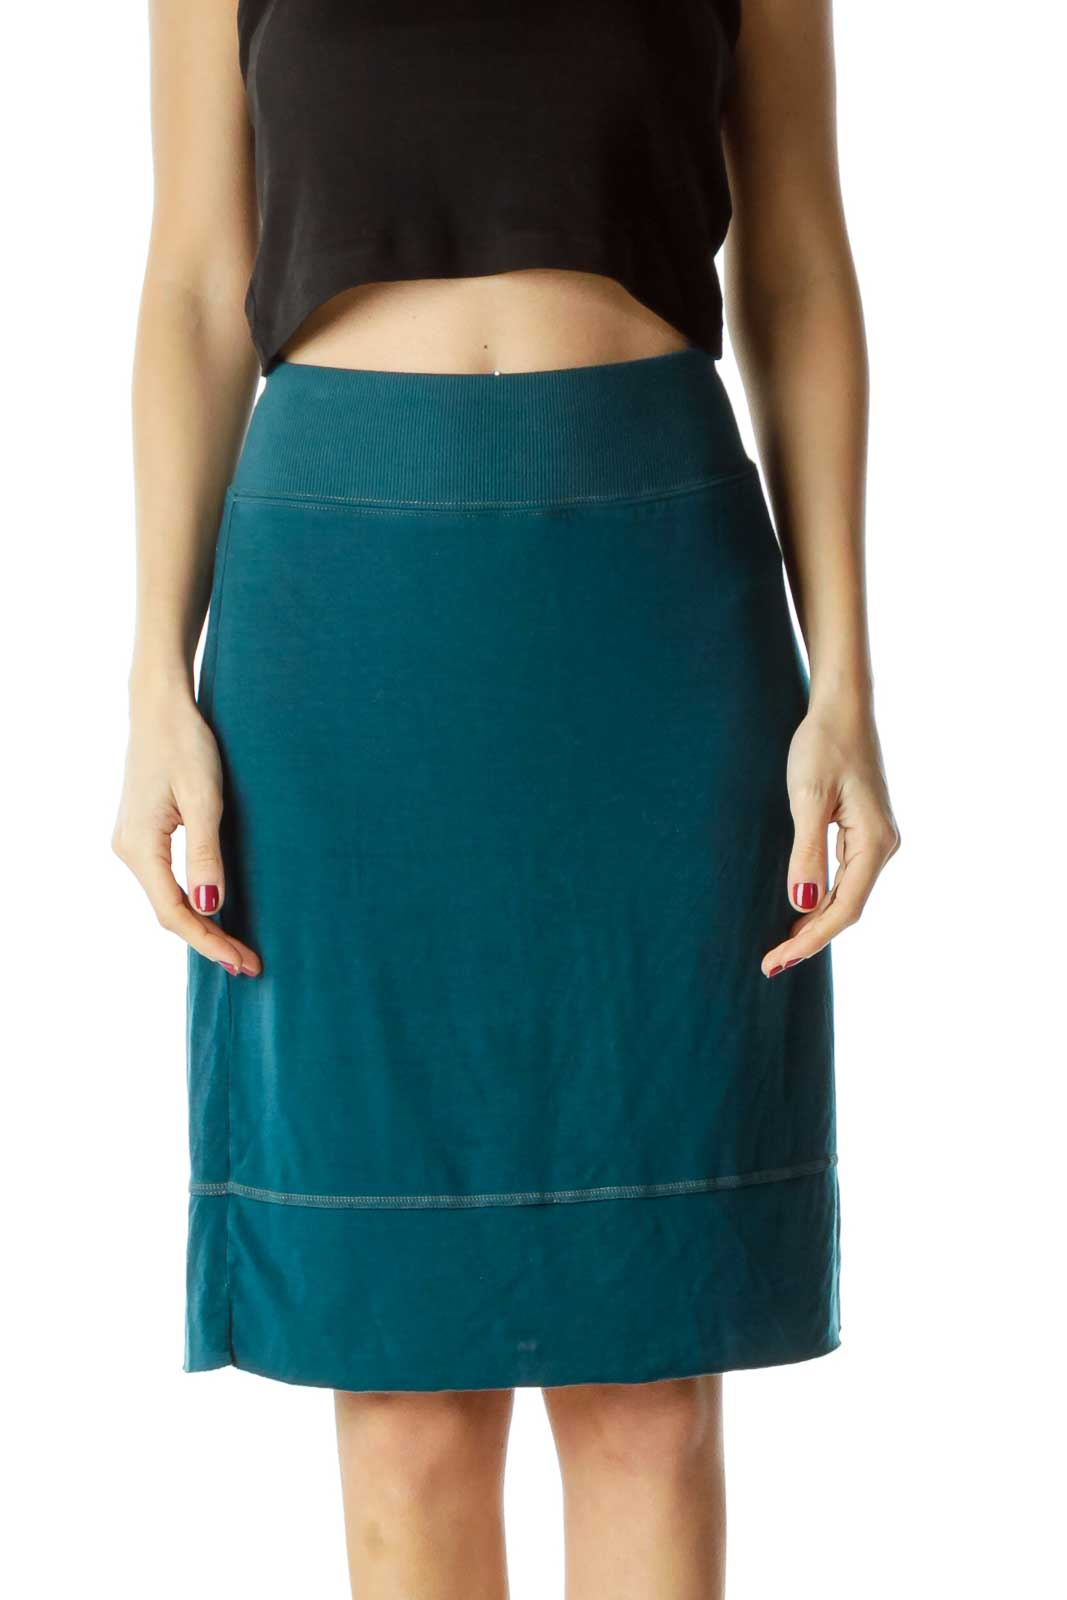 Blue Stretchy Pencil Skirt